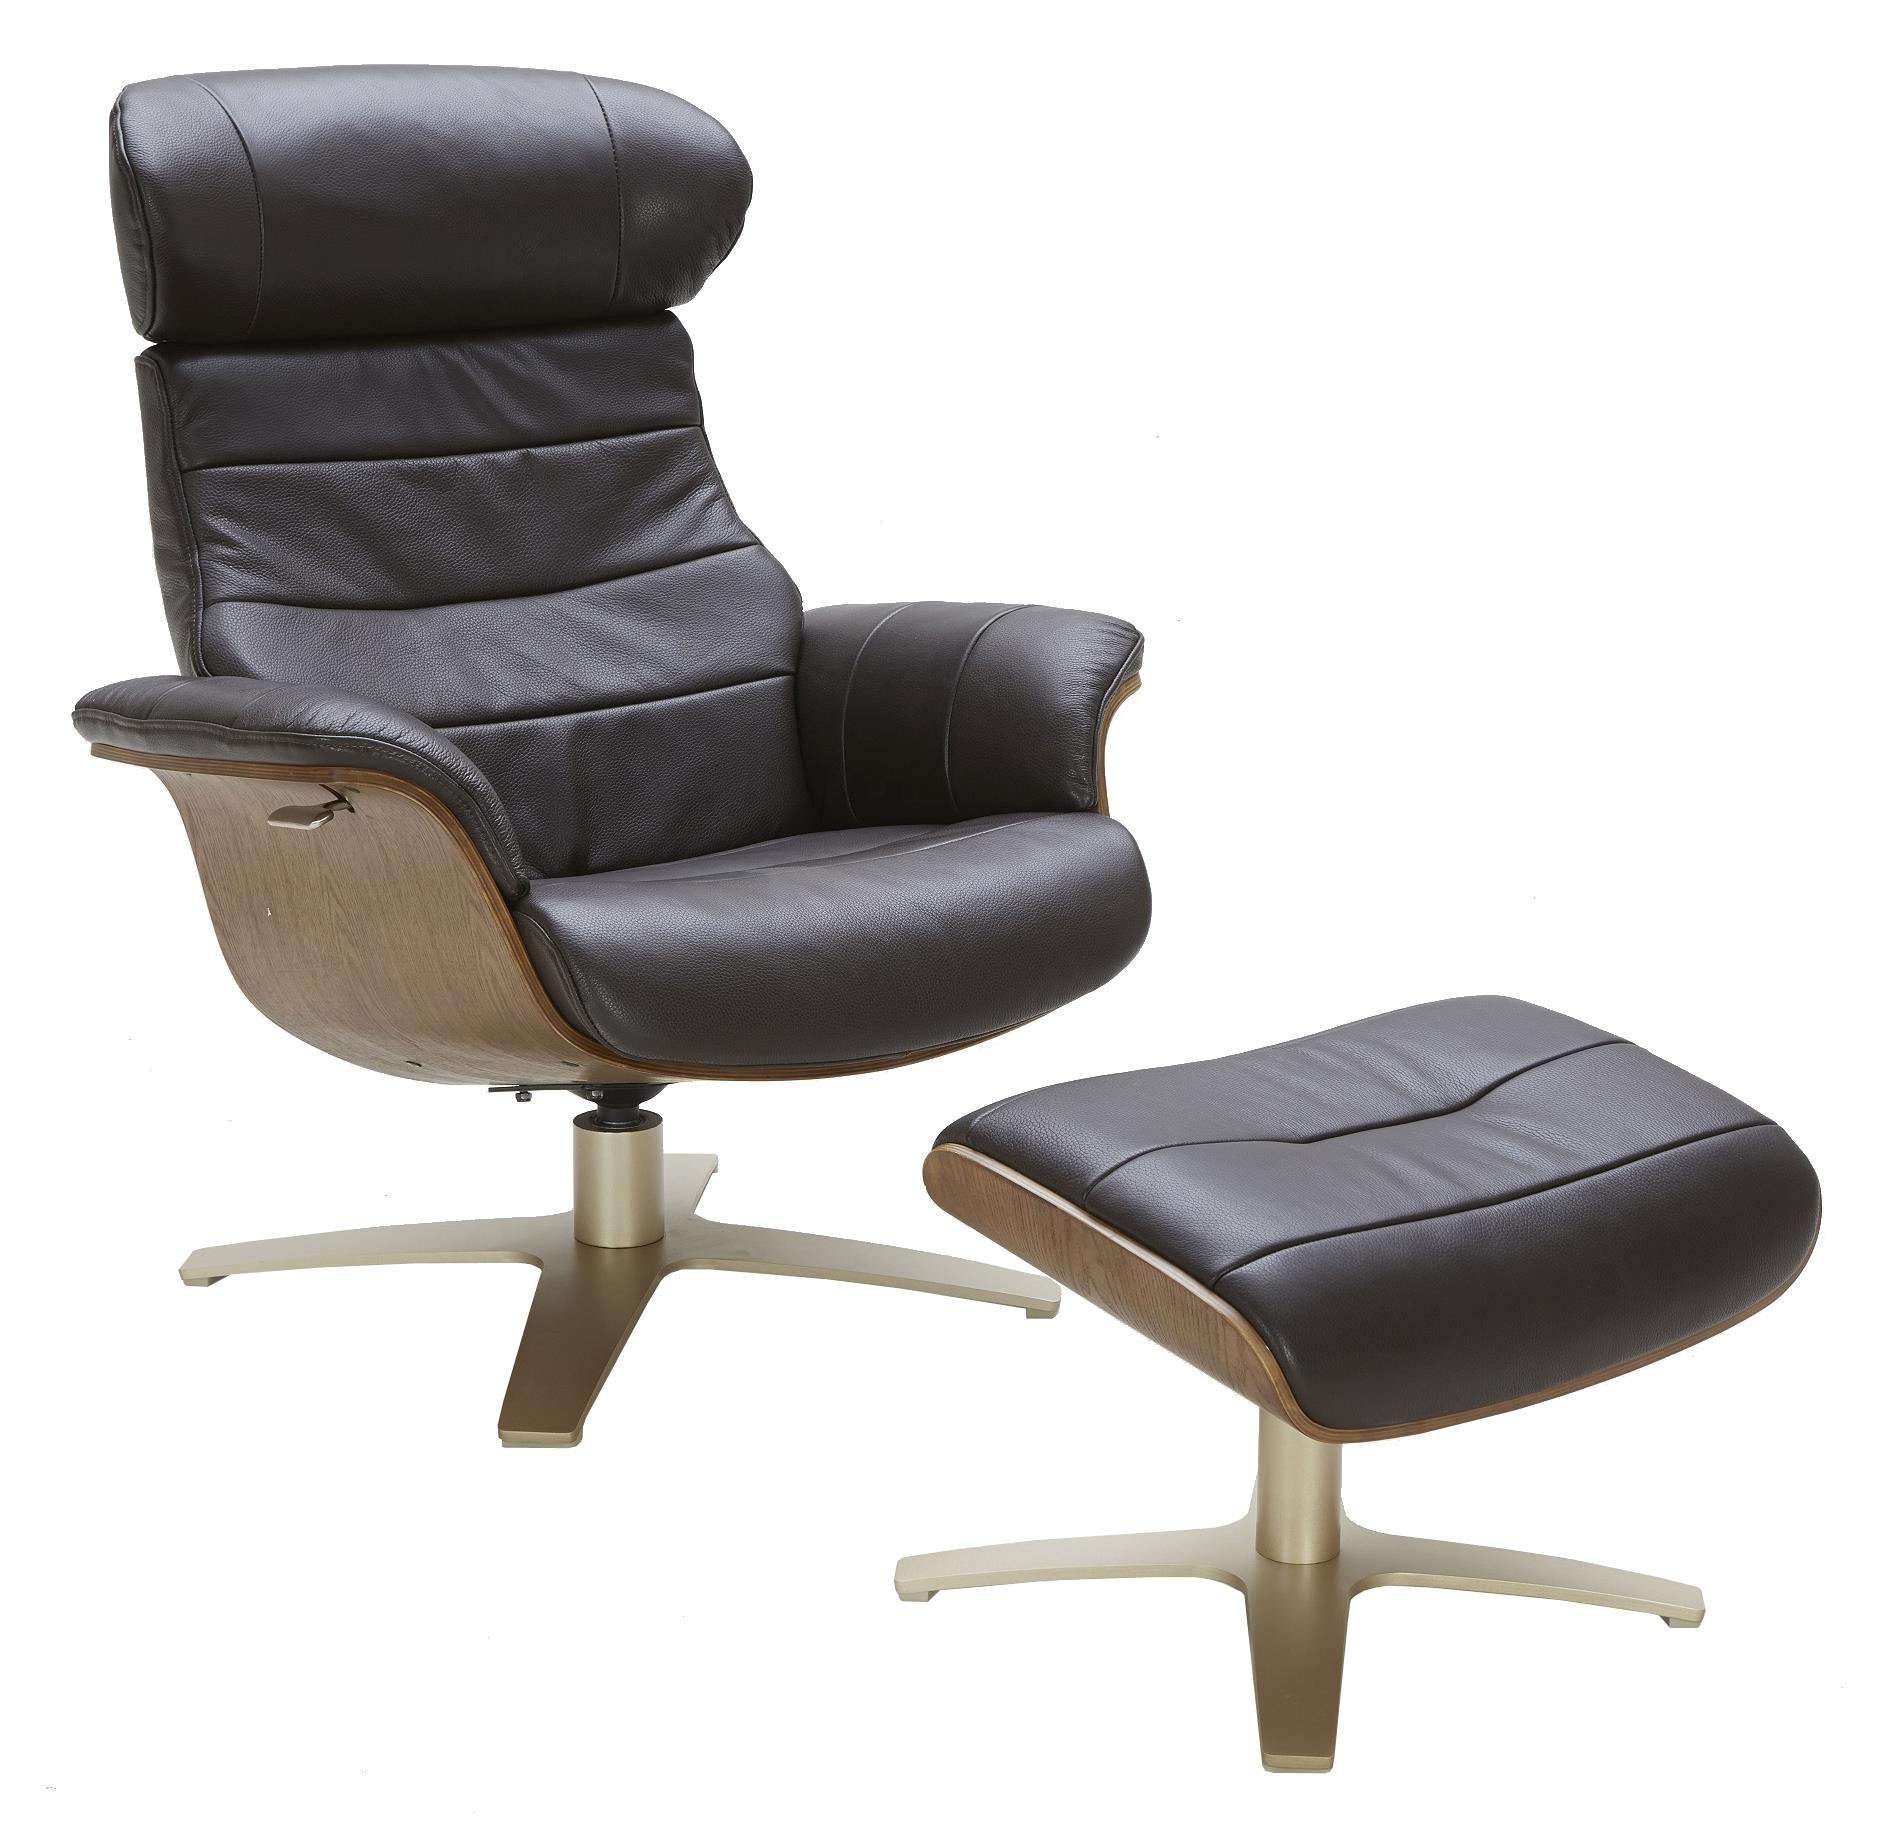 Urban Evolution A928 Lean-Back Swivel Chair and Ottoman - Item Number: A928-1-2a-S+A928